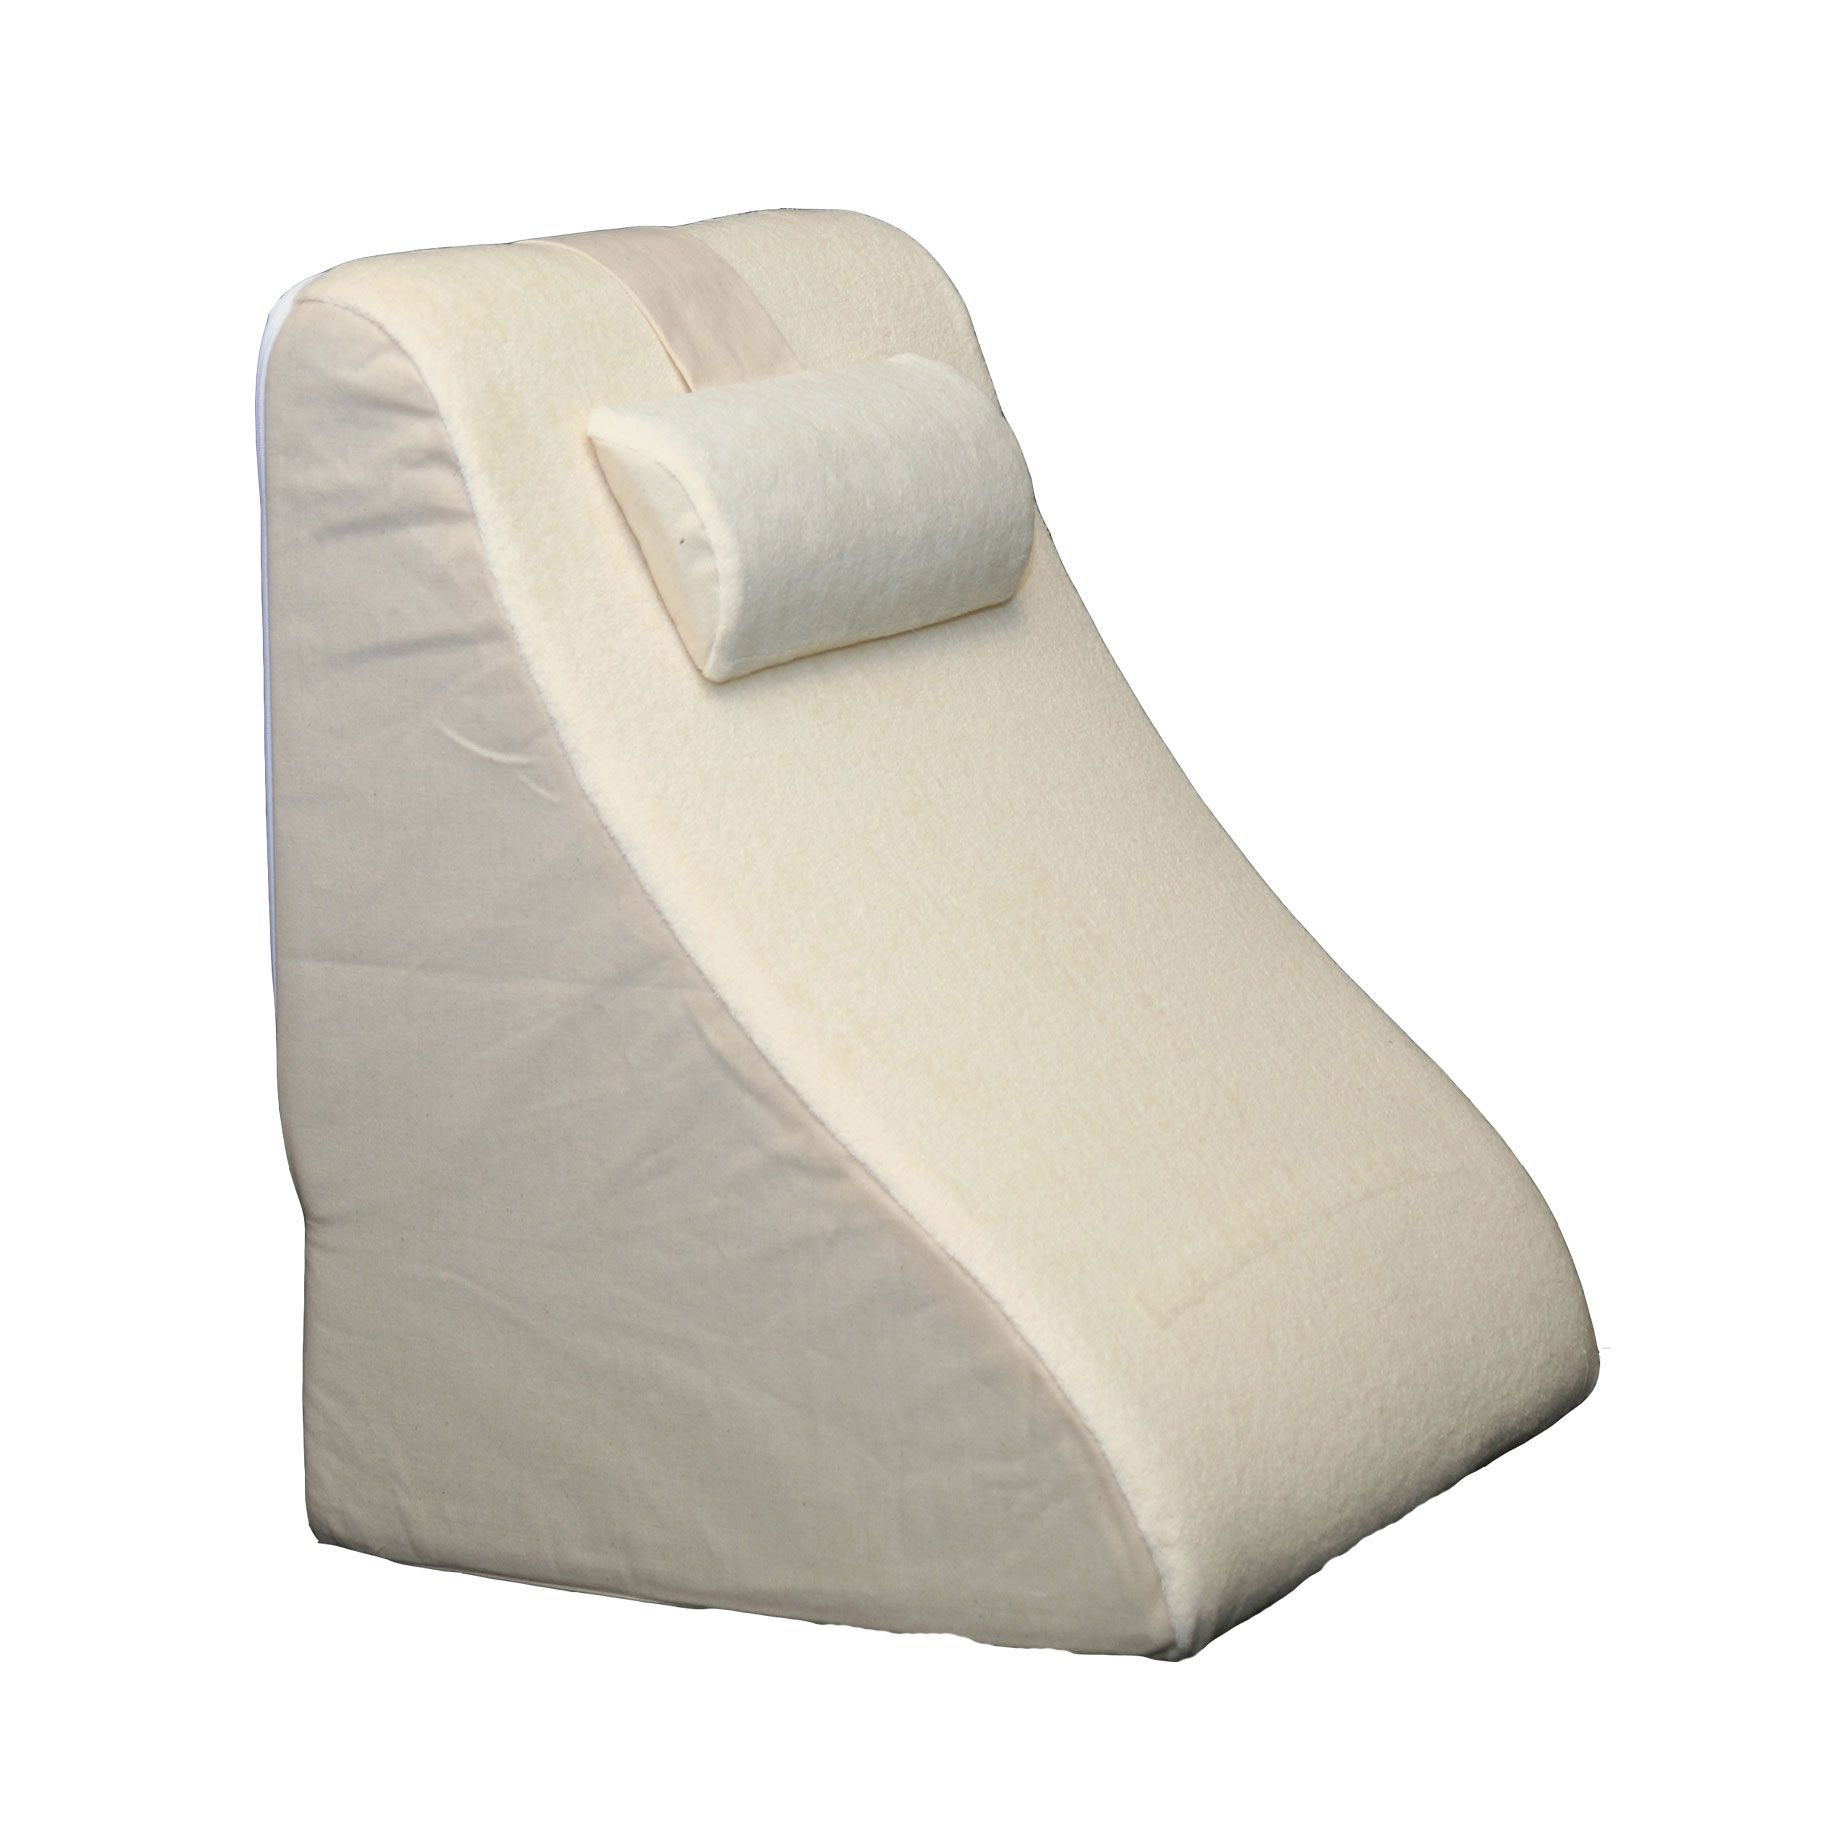 The Bed Wedge Pillow To Keep You Prime Everyday